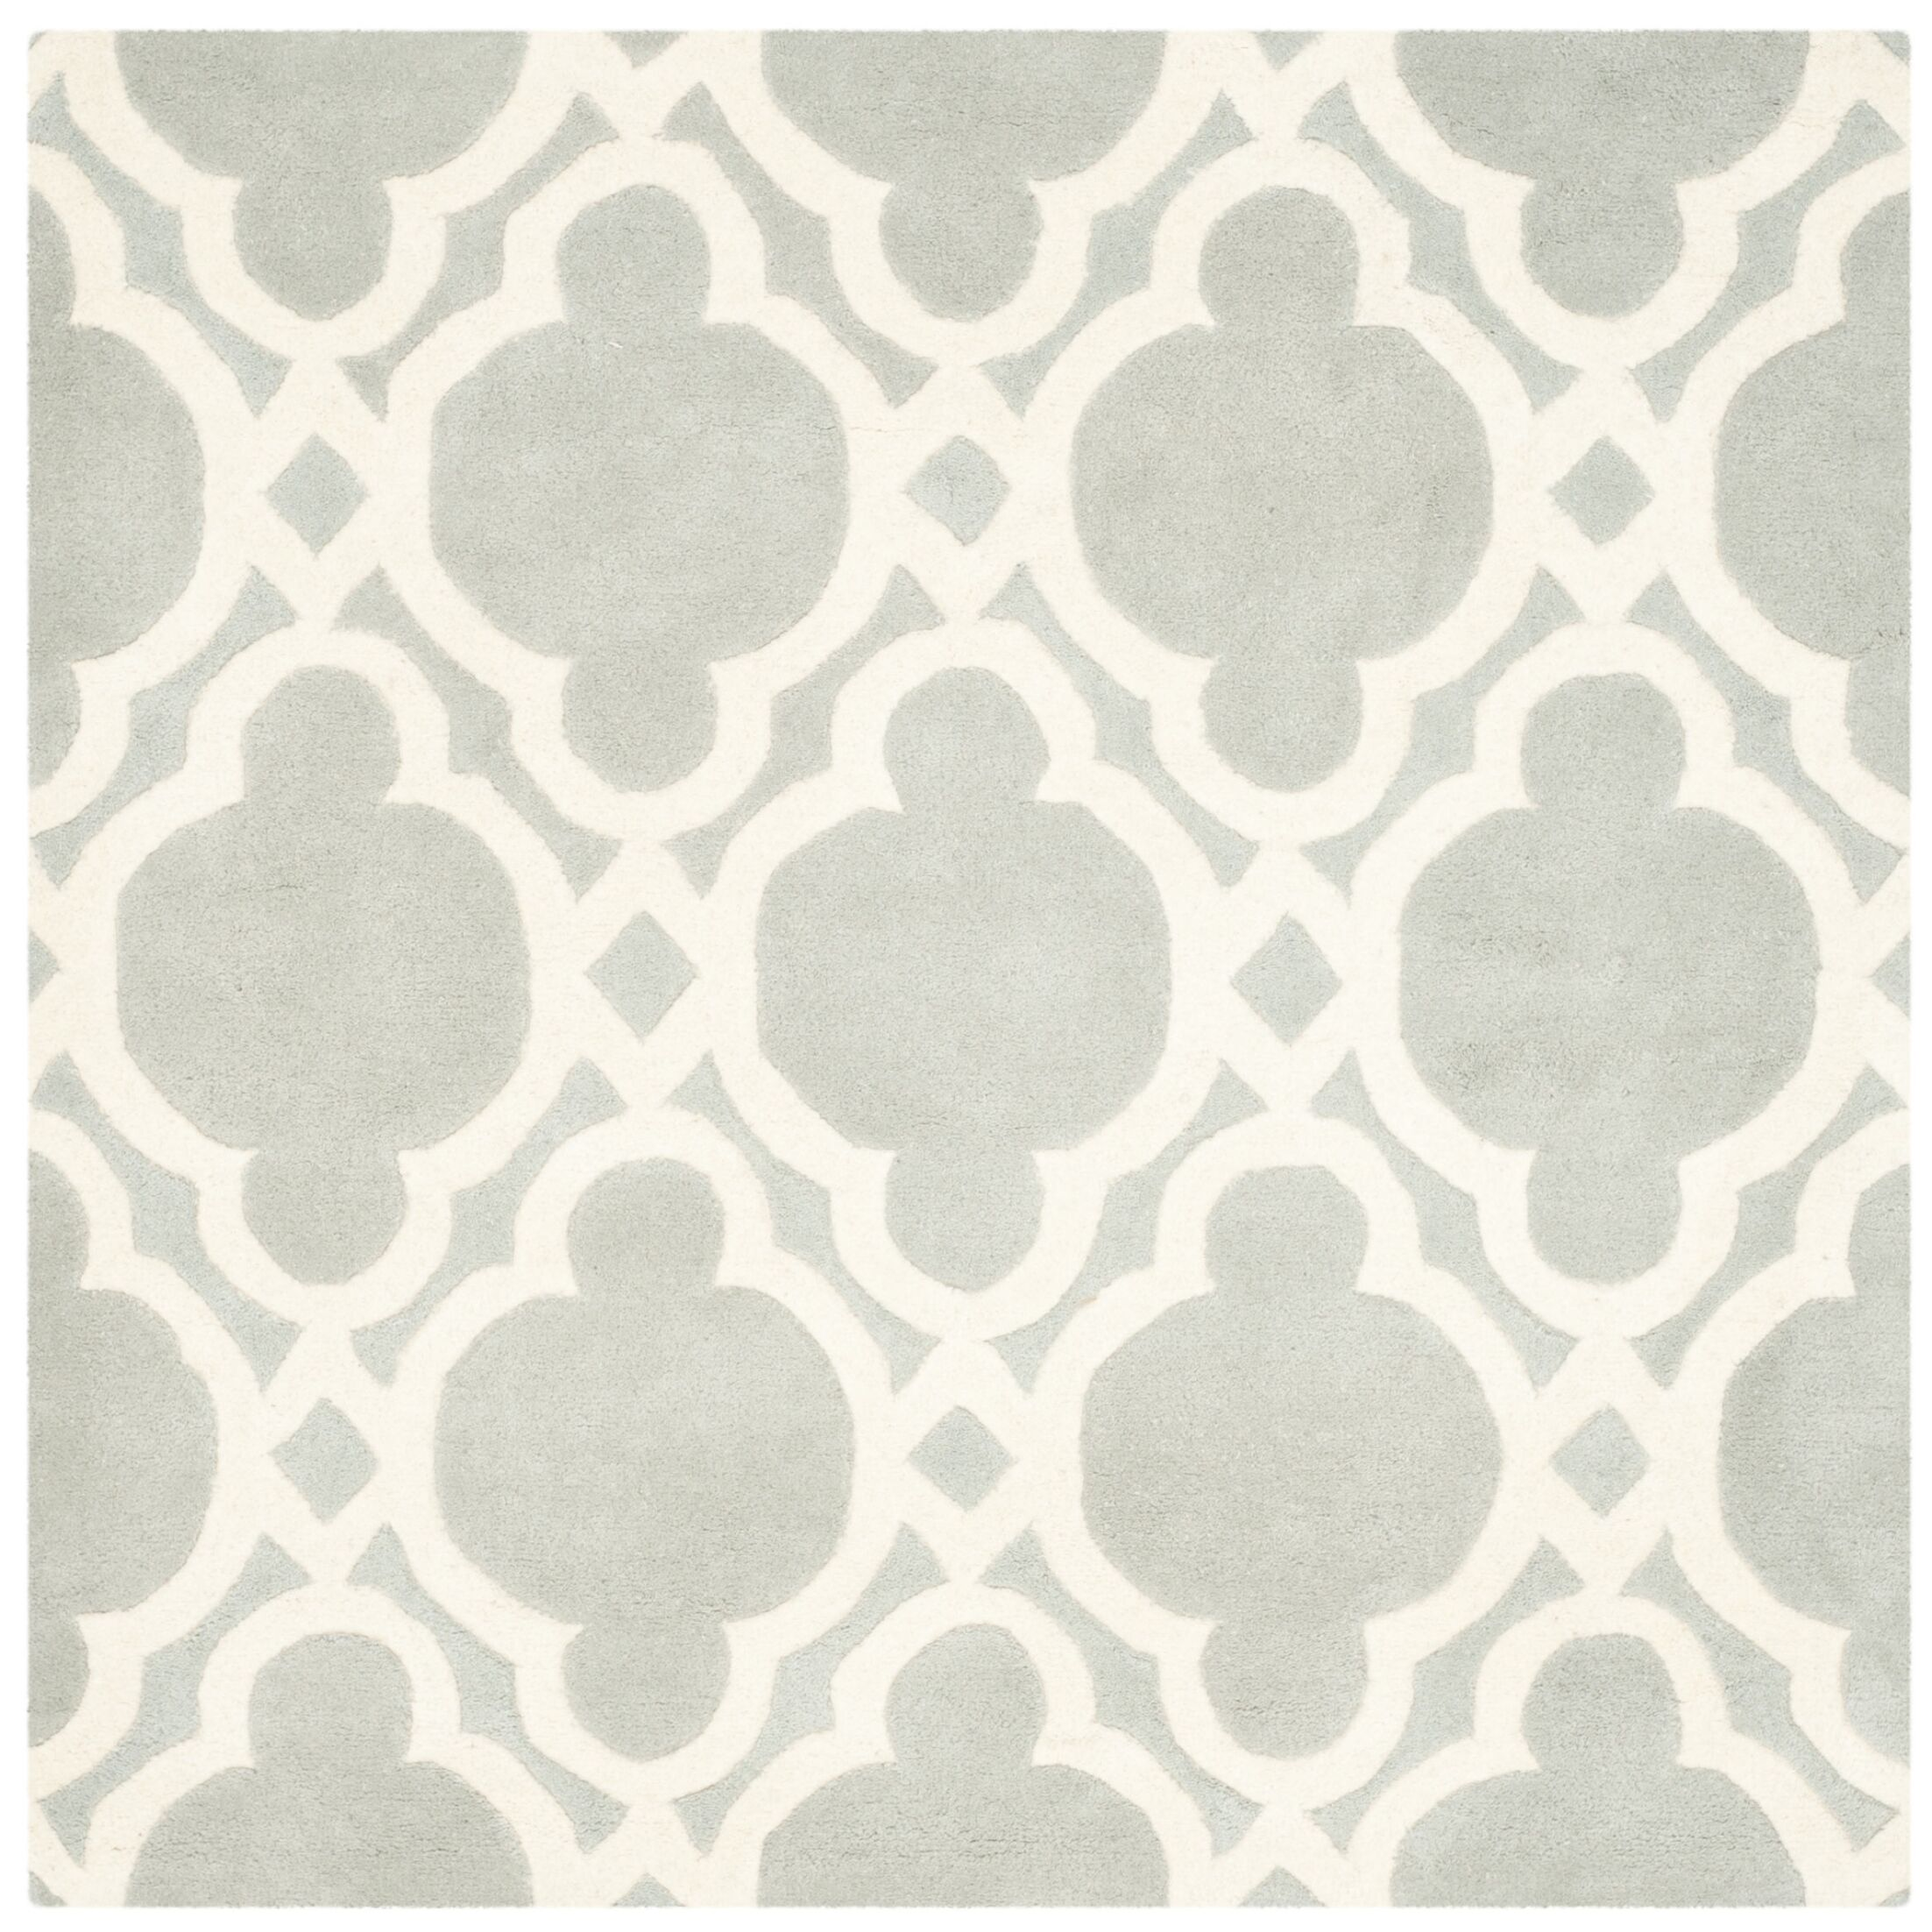 Wilkin Hand-Woven Wool Gray/Ivory Area Rug Rug Size: Square 5'